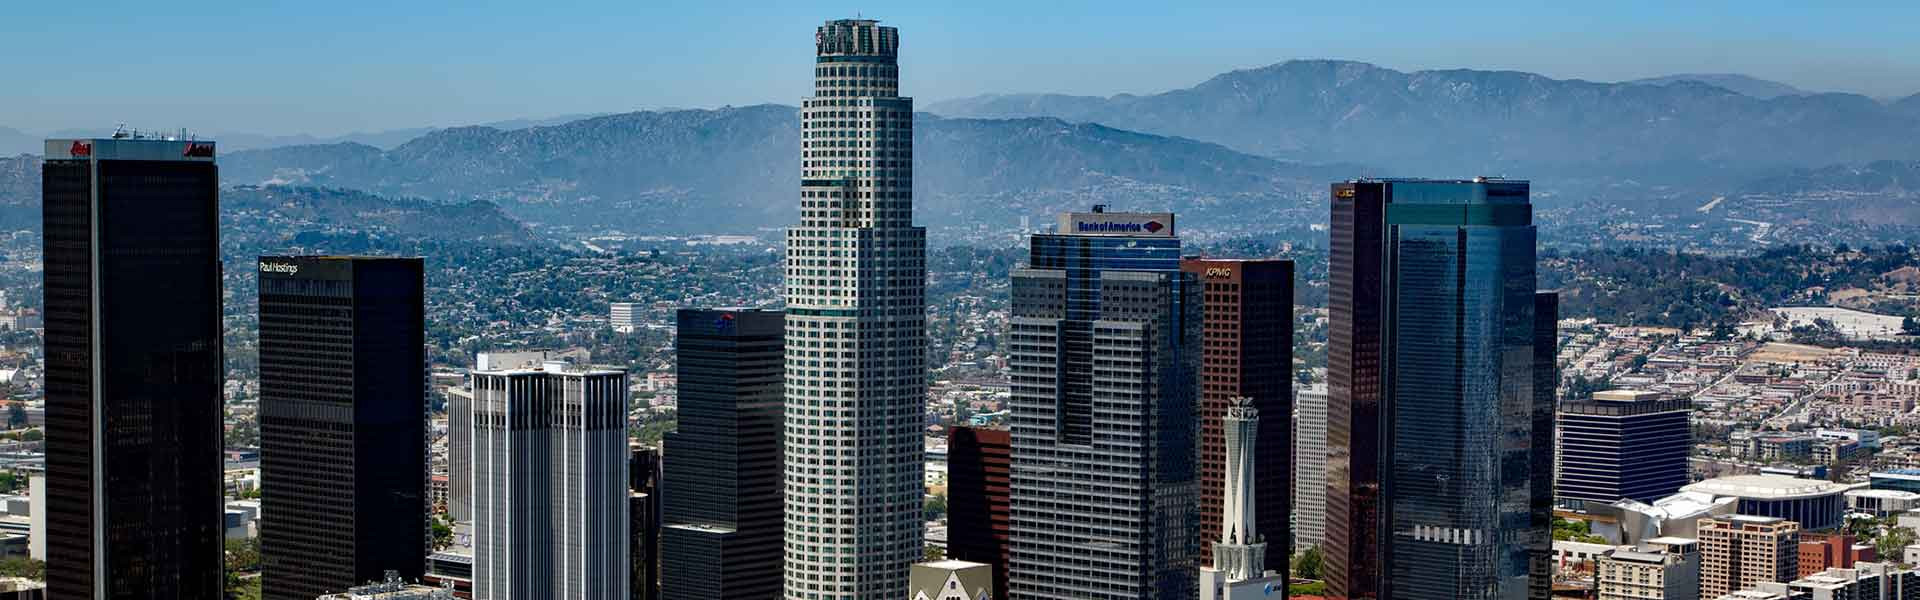 outdoor picture of Los Angeles, California